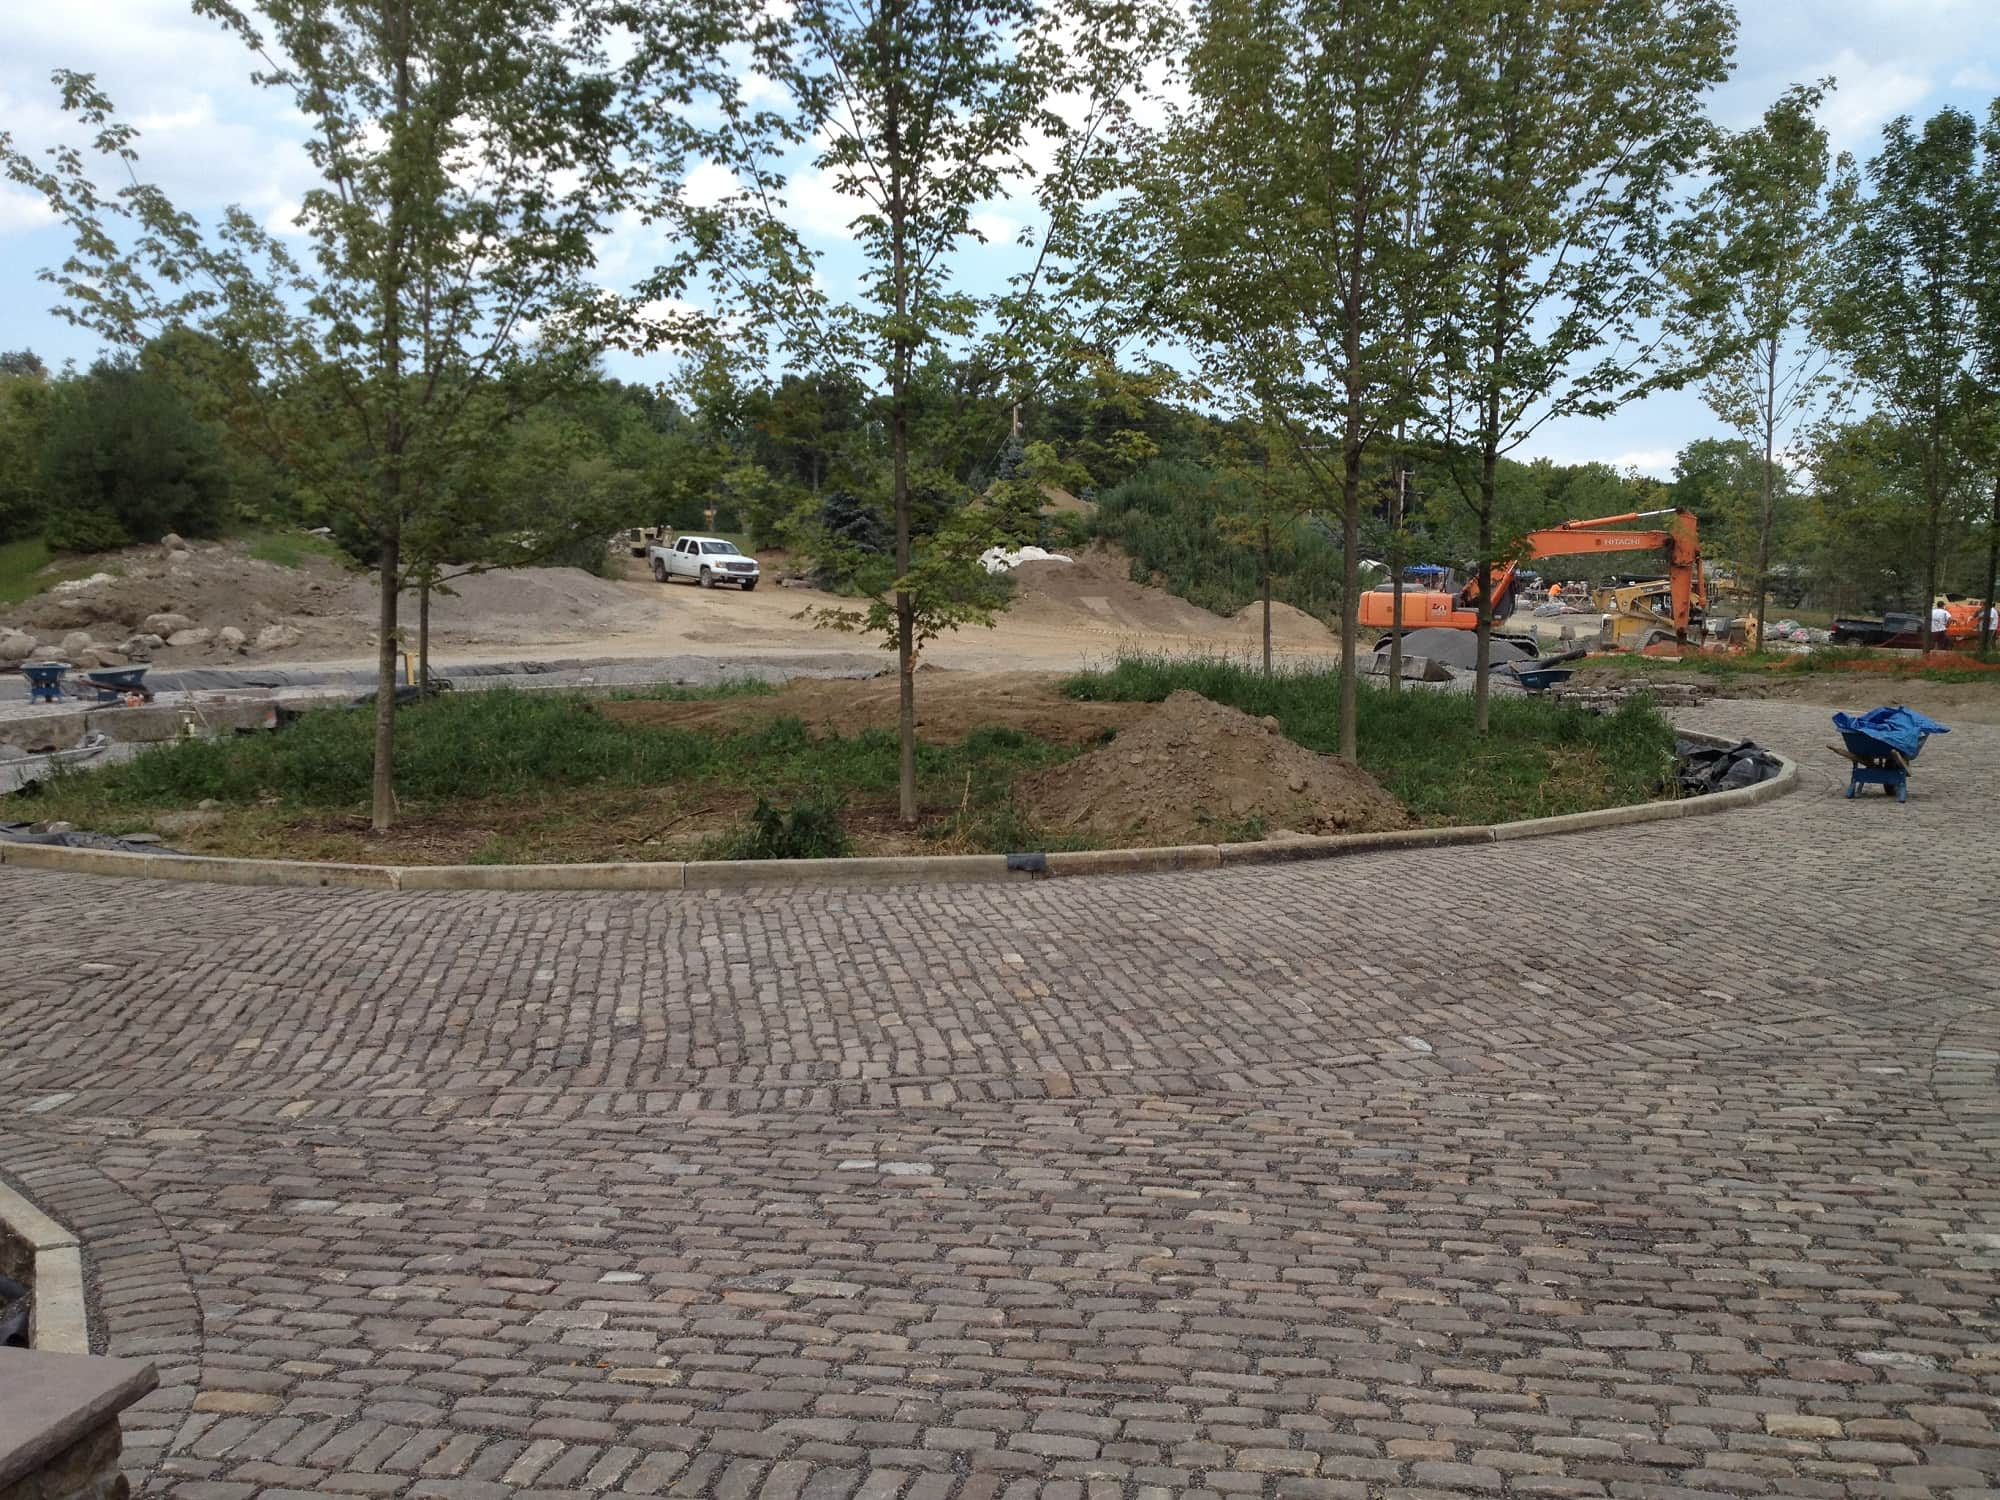 Old English Cobblestone paved roundabout with trees and a green-area in the middle.